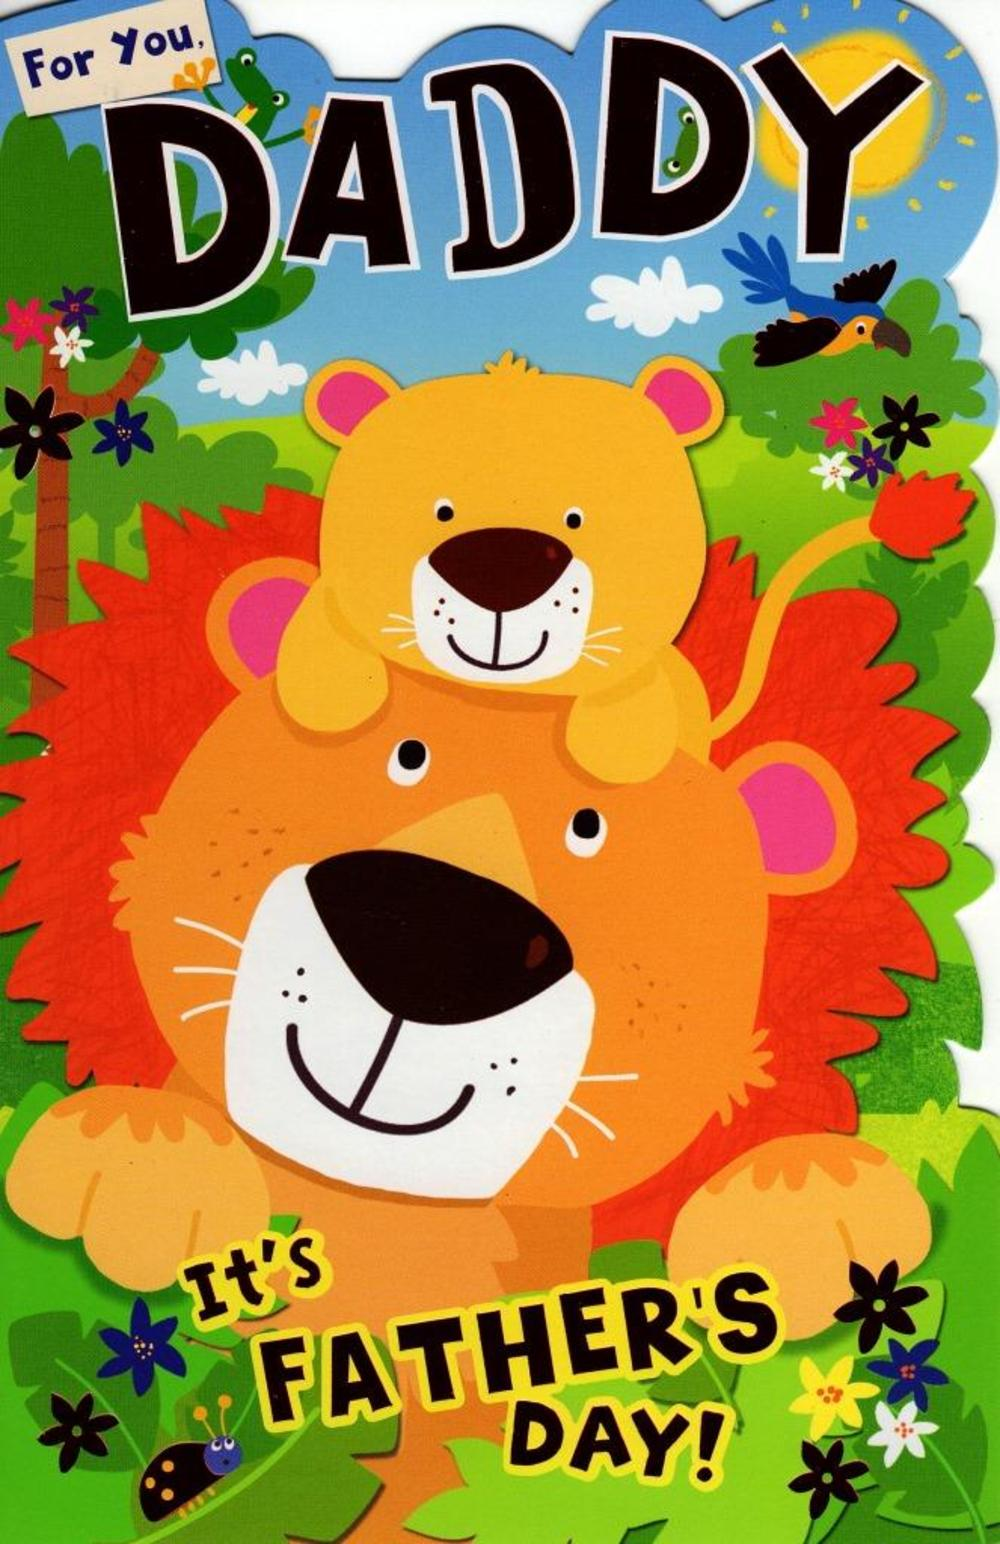 For You Daddy Happy Father's Day Card Cute Lion